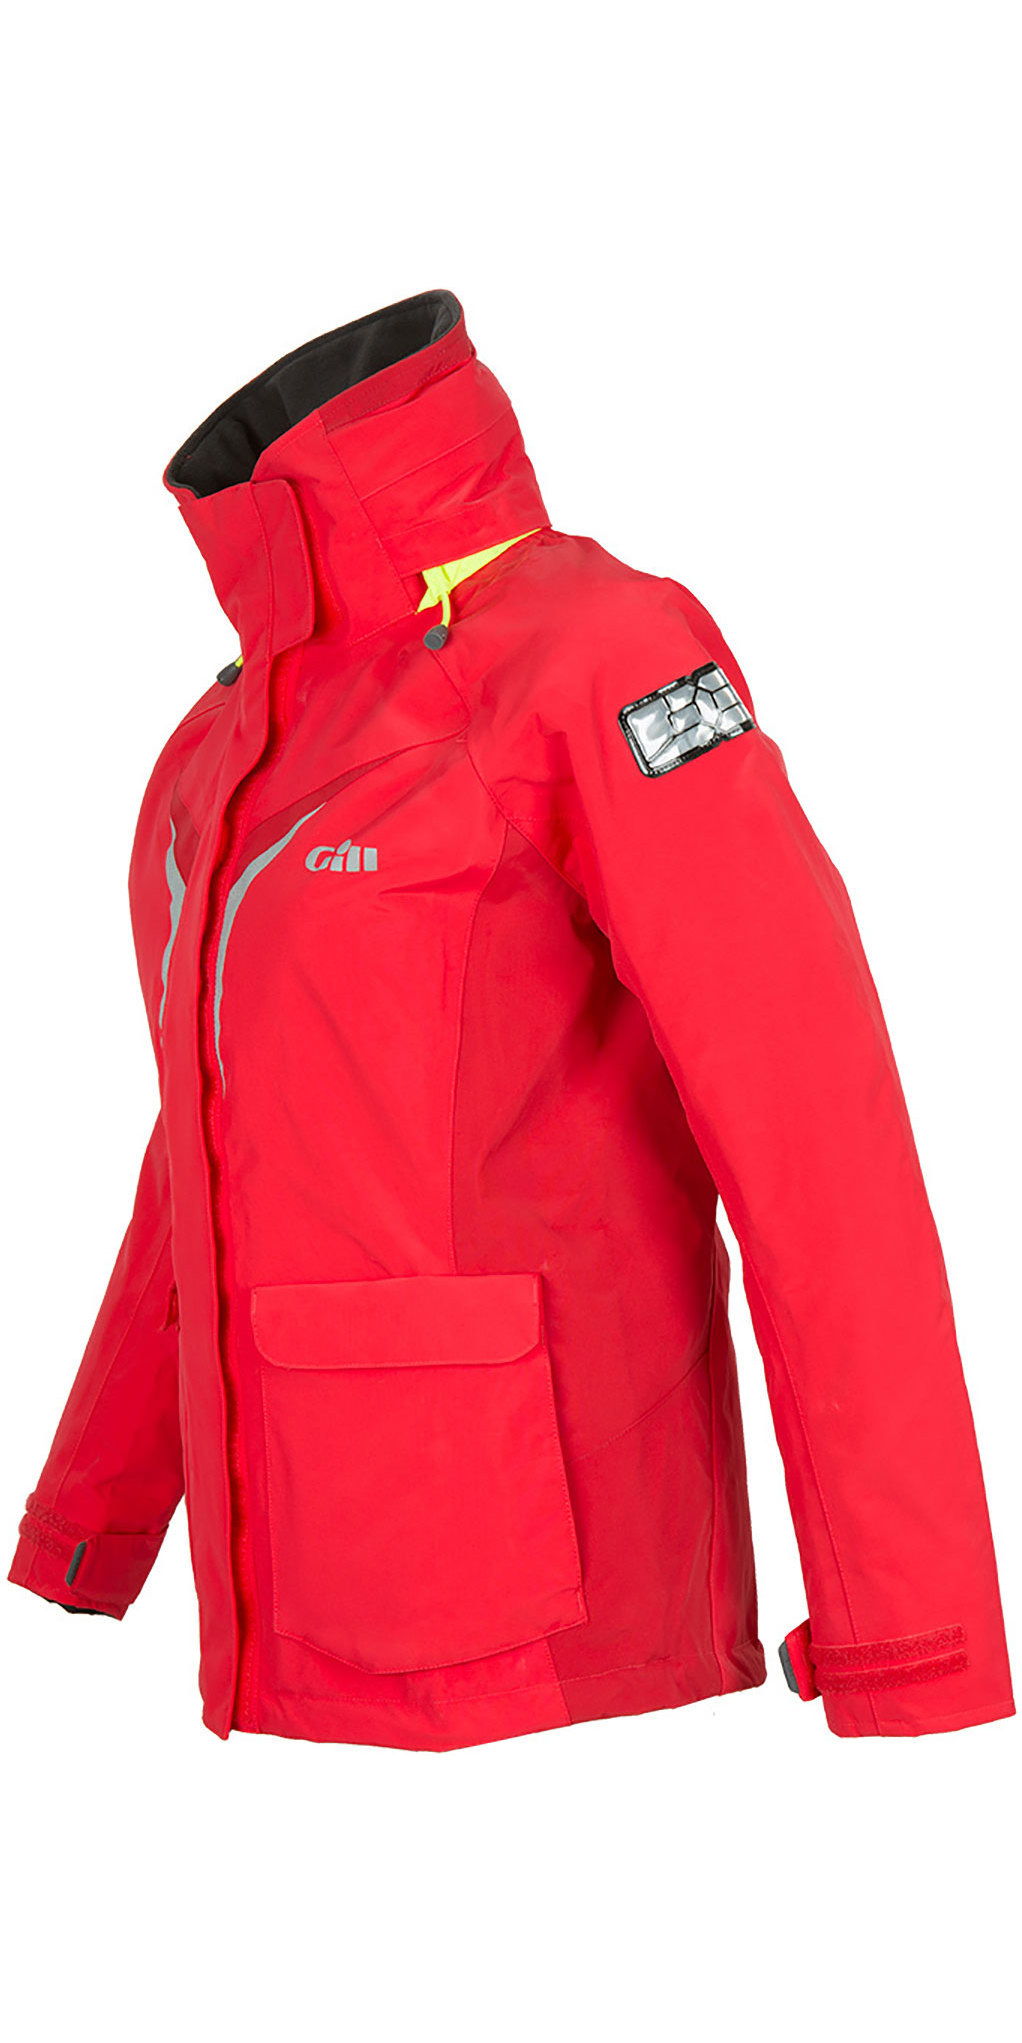 2020 Gill OS3 Womens Coastal Jacket & Trouser Combi Set - Bright Red / Graphite